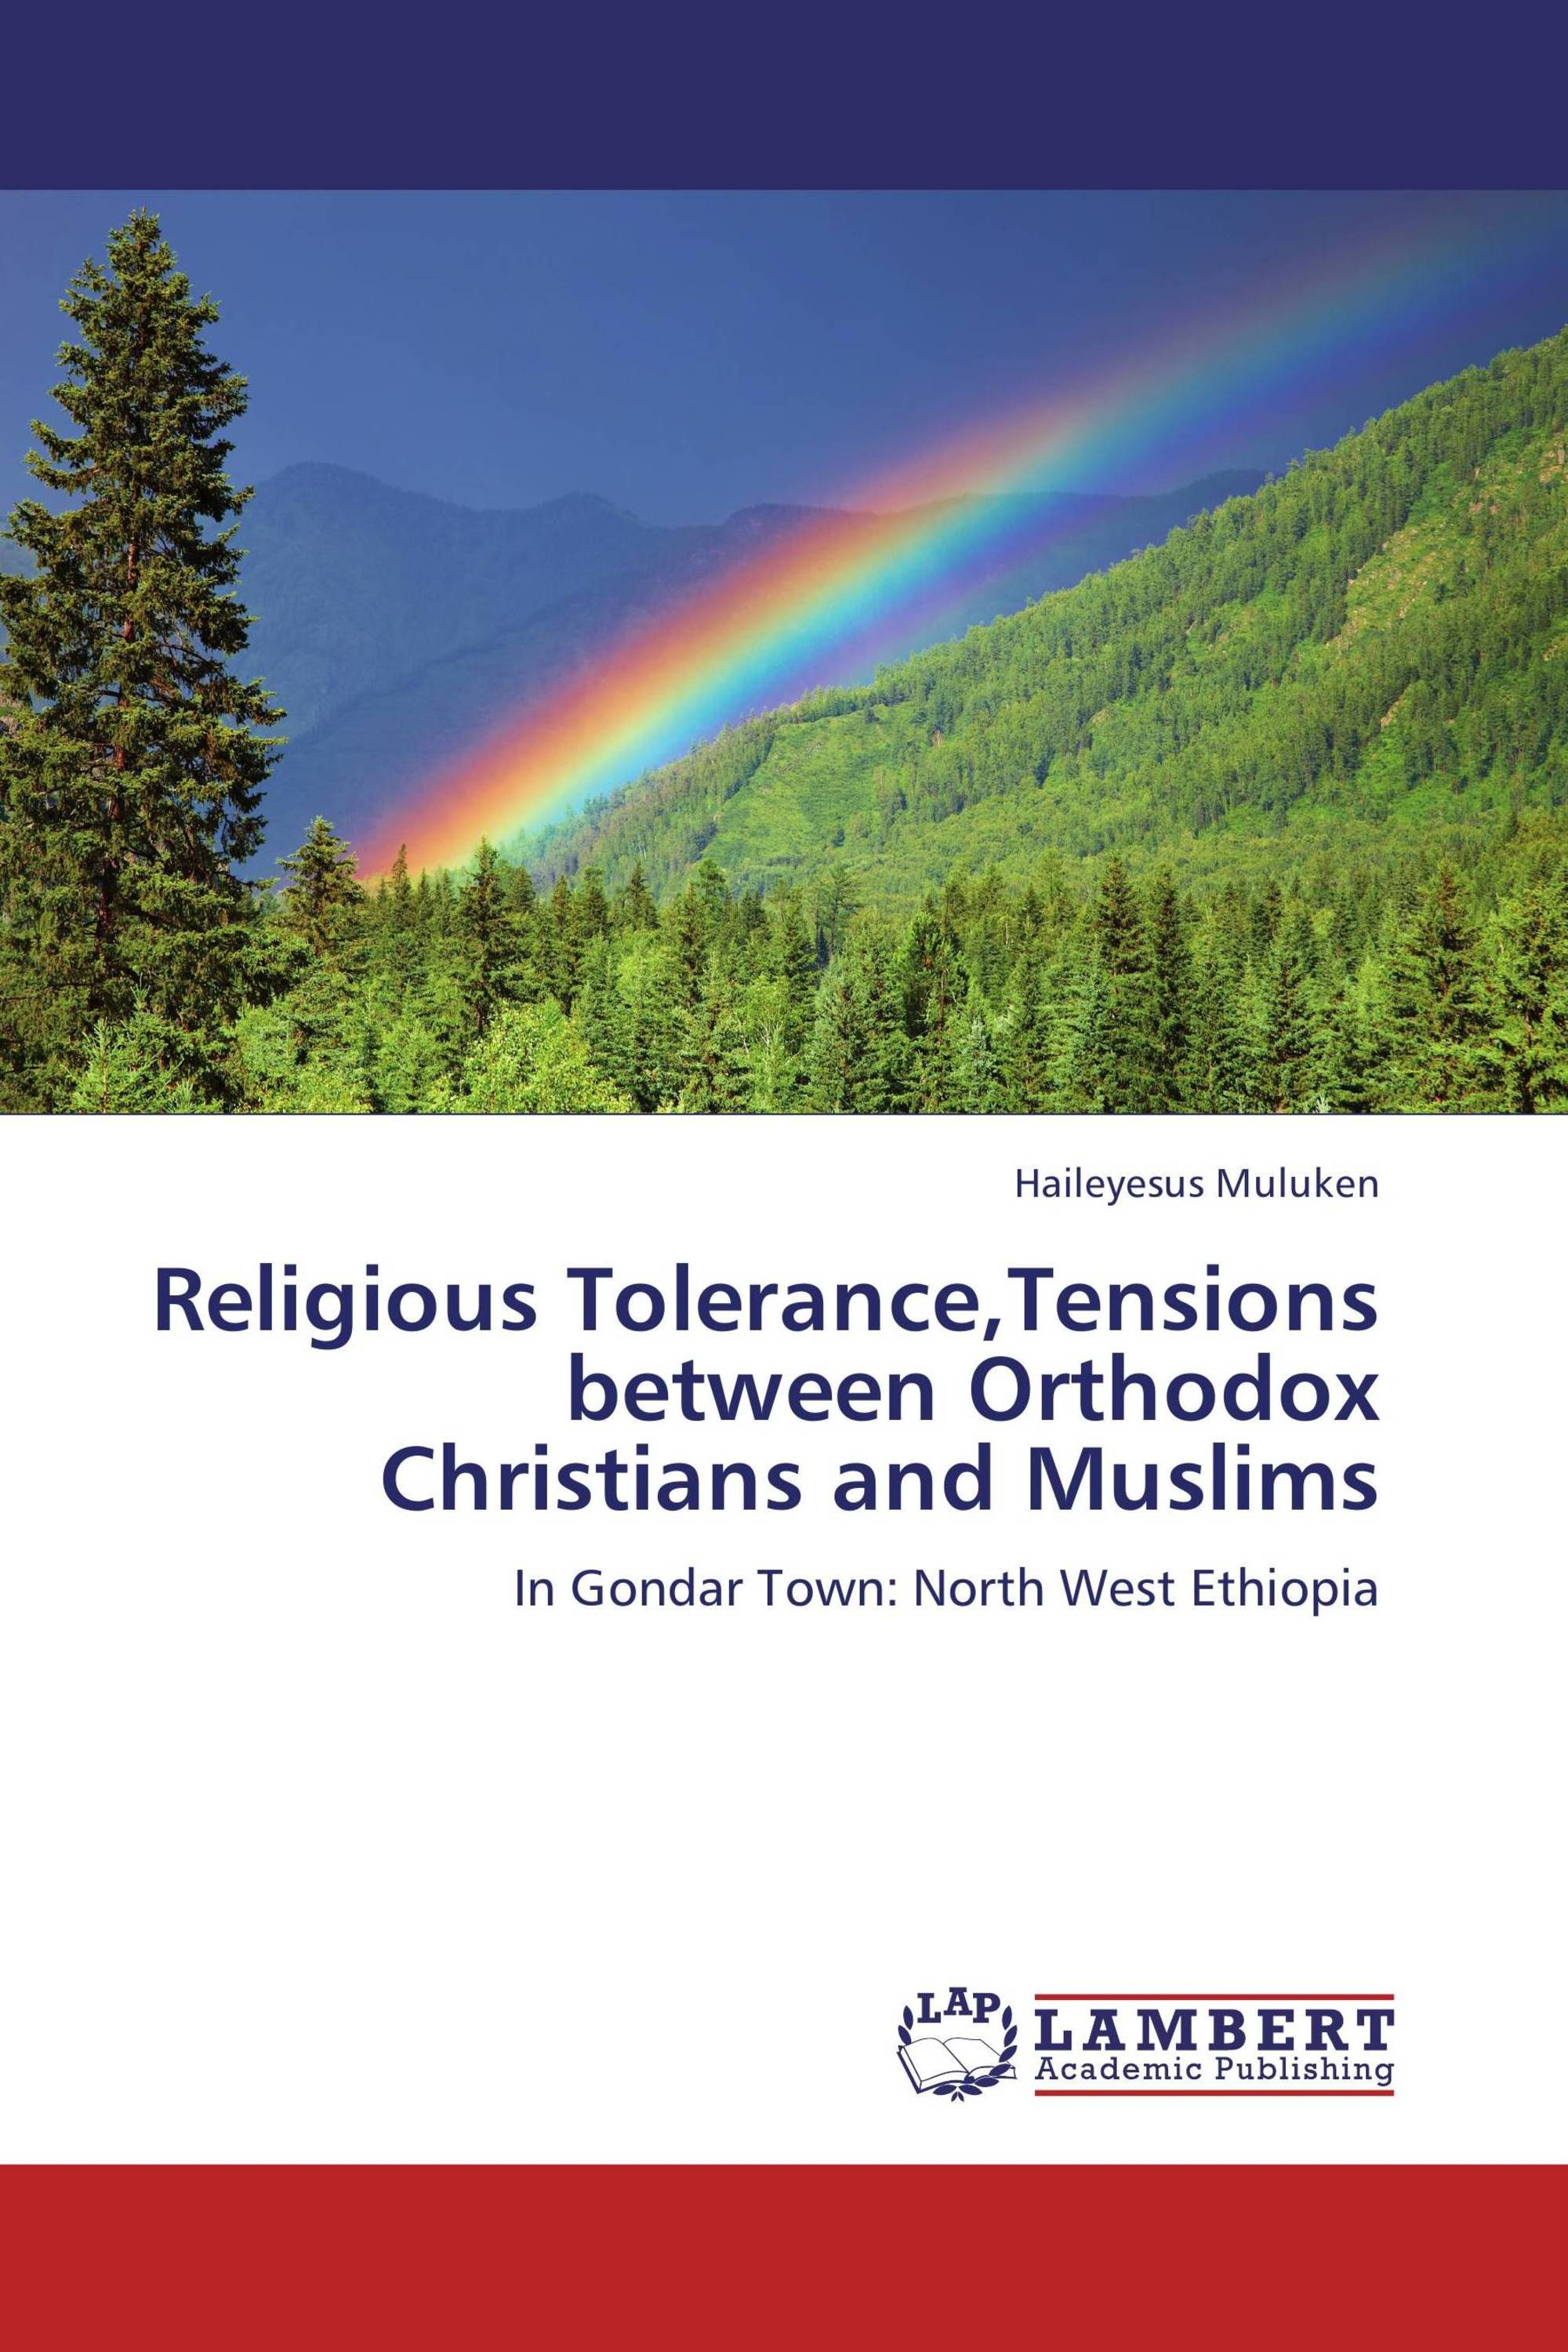 Religious Tolerance,Tensions between Orthodox Christians and Muslims